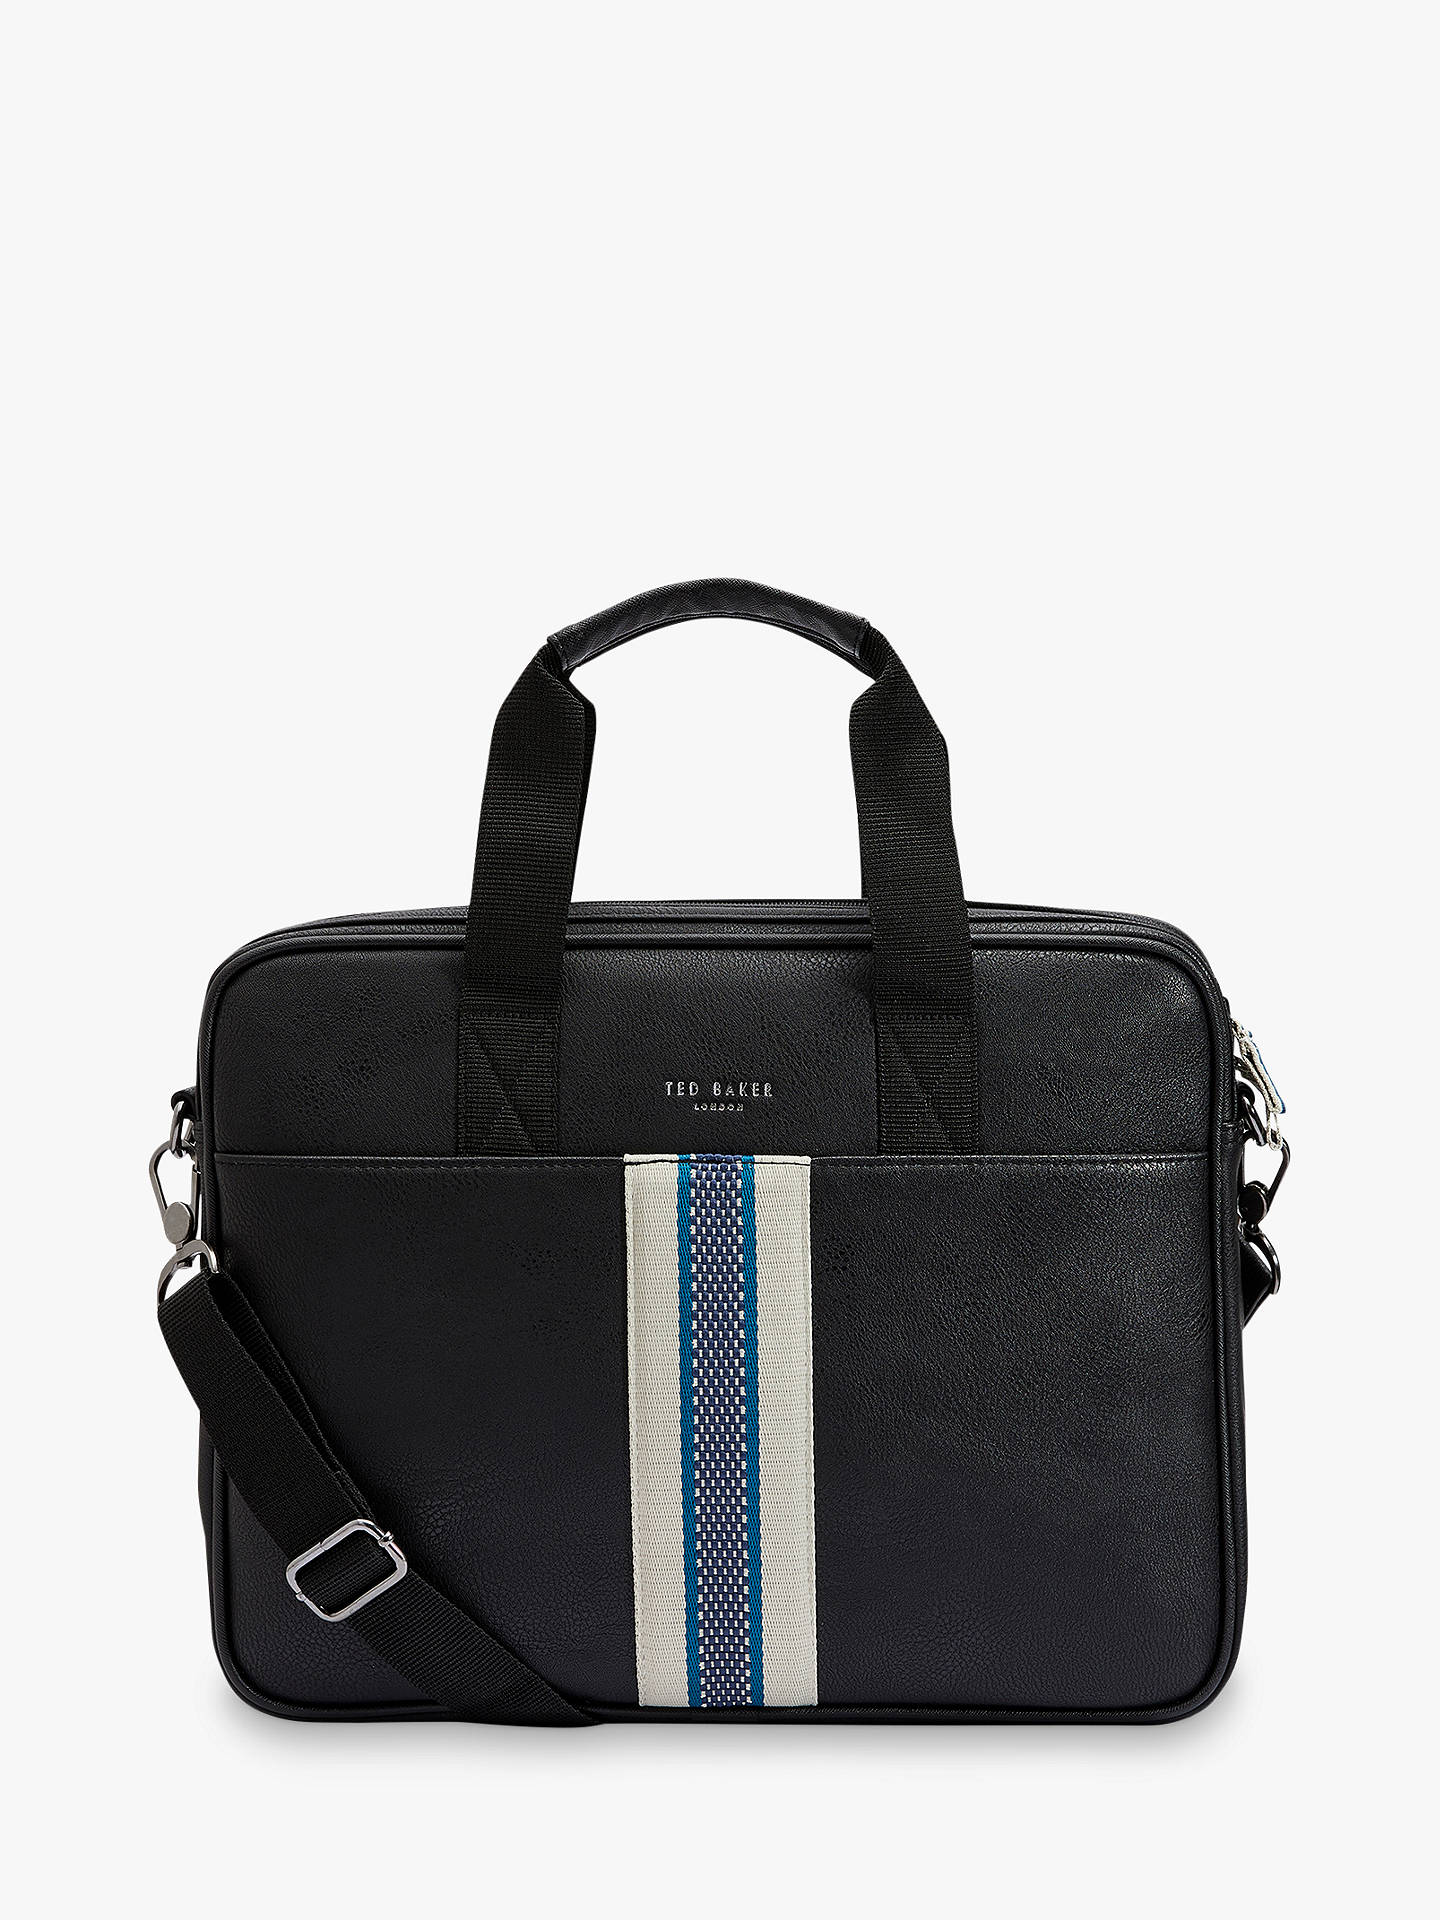 49e701a50b7 Buy Ted Baker Coopar Webbing Document Bag, Black Online at johnlewis.com ...